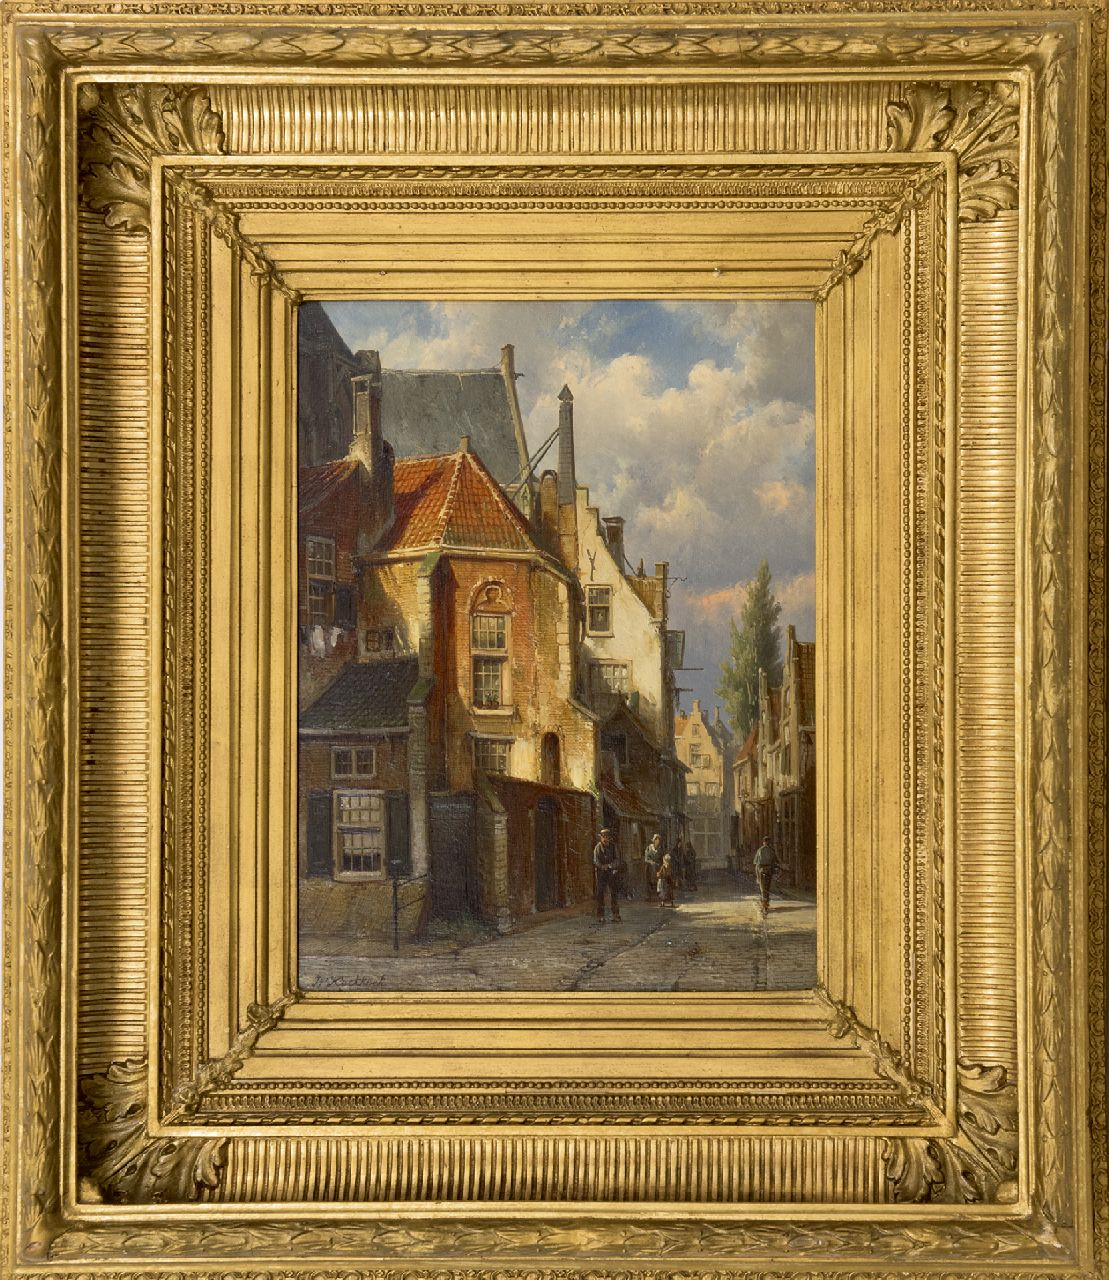 Koekkoek W.  | Willem Koekkoek | Paintings offered for sale | Street behind the church in a Dutch village, oil on panel 38.3 x 29.5 cm, signed l.l.